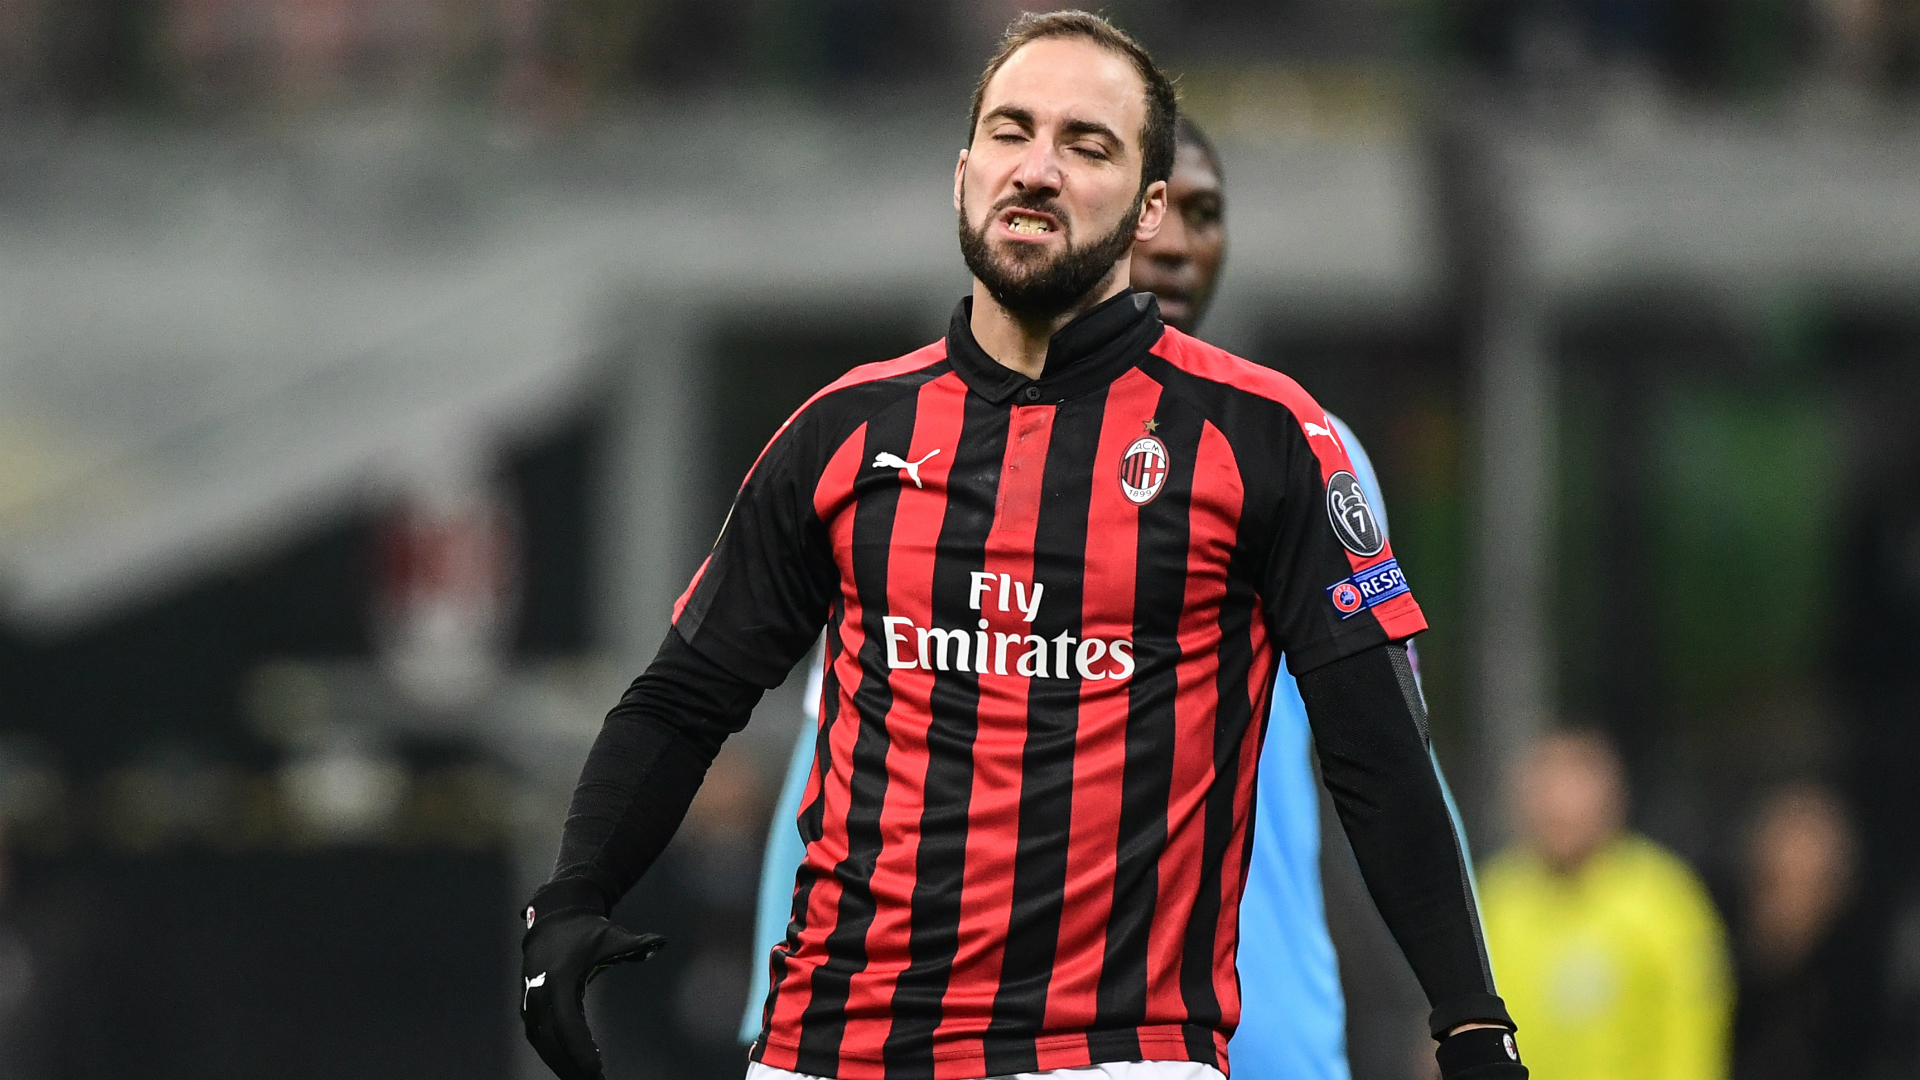 Higuain poised to complete Chelsea move